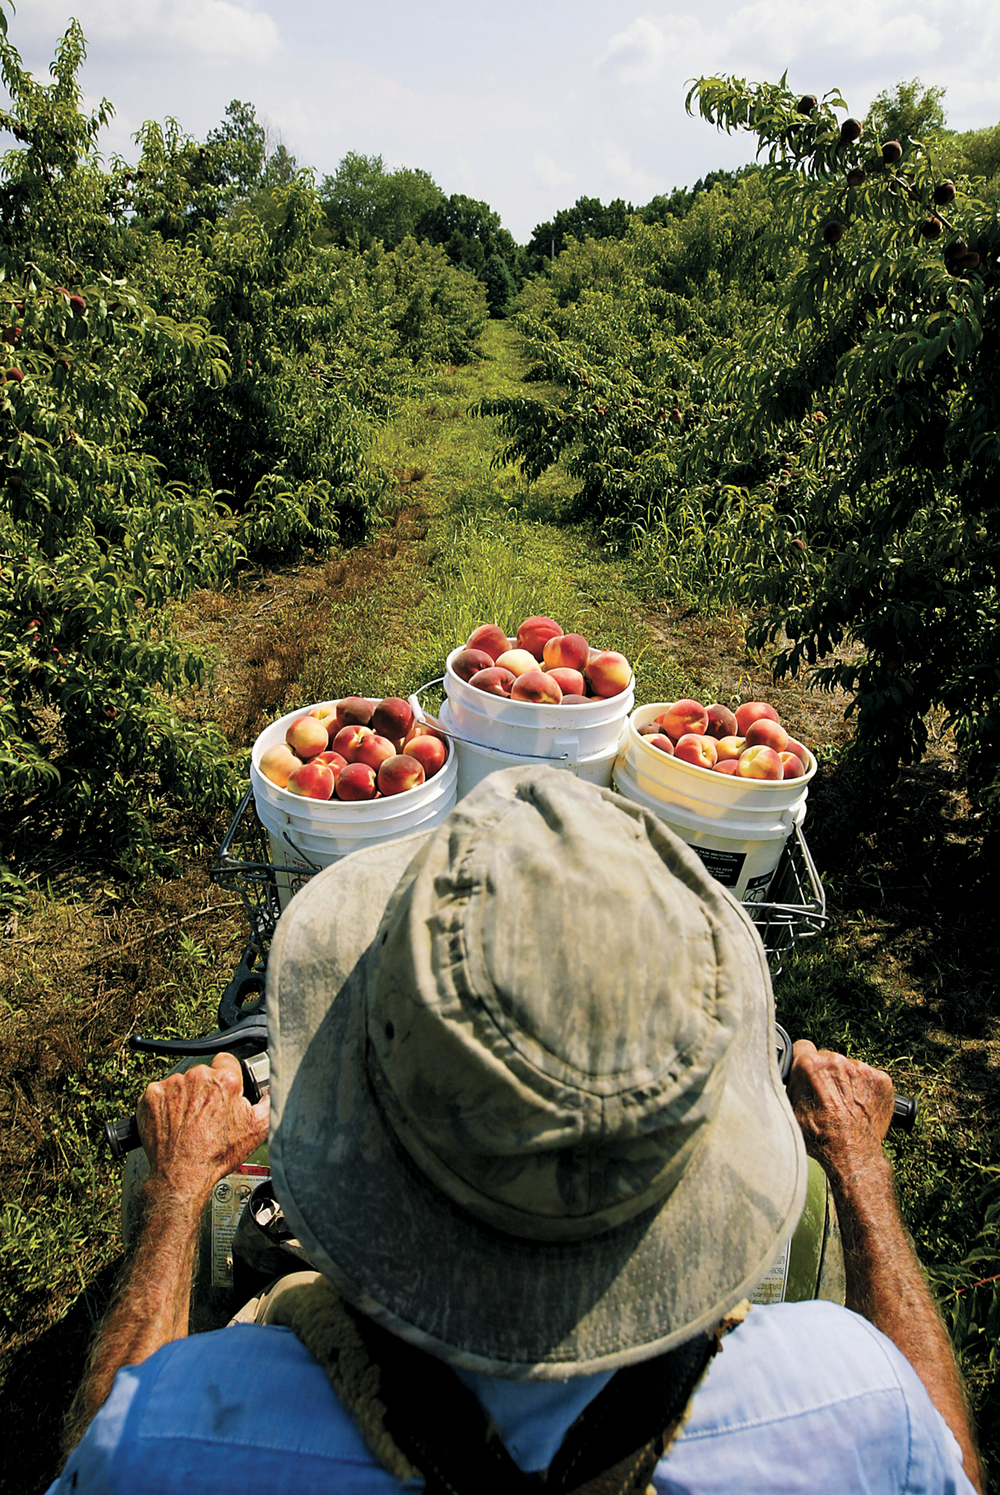 Albert Jefferies, 80, owner of Jefferies Orchard, rides through his orchard and brings fresh-picked peaches home to sell. The Jeffries family have owned the orchard since 1822. Michael Brown/The State Journal-Register